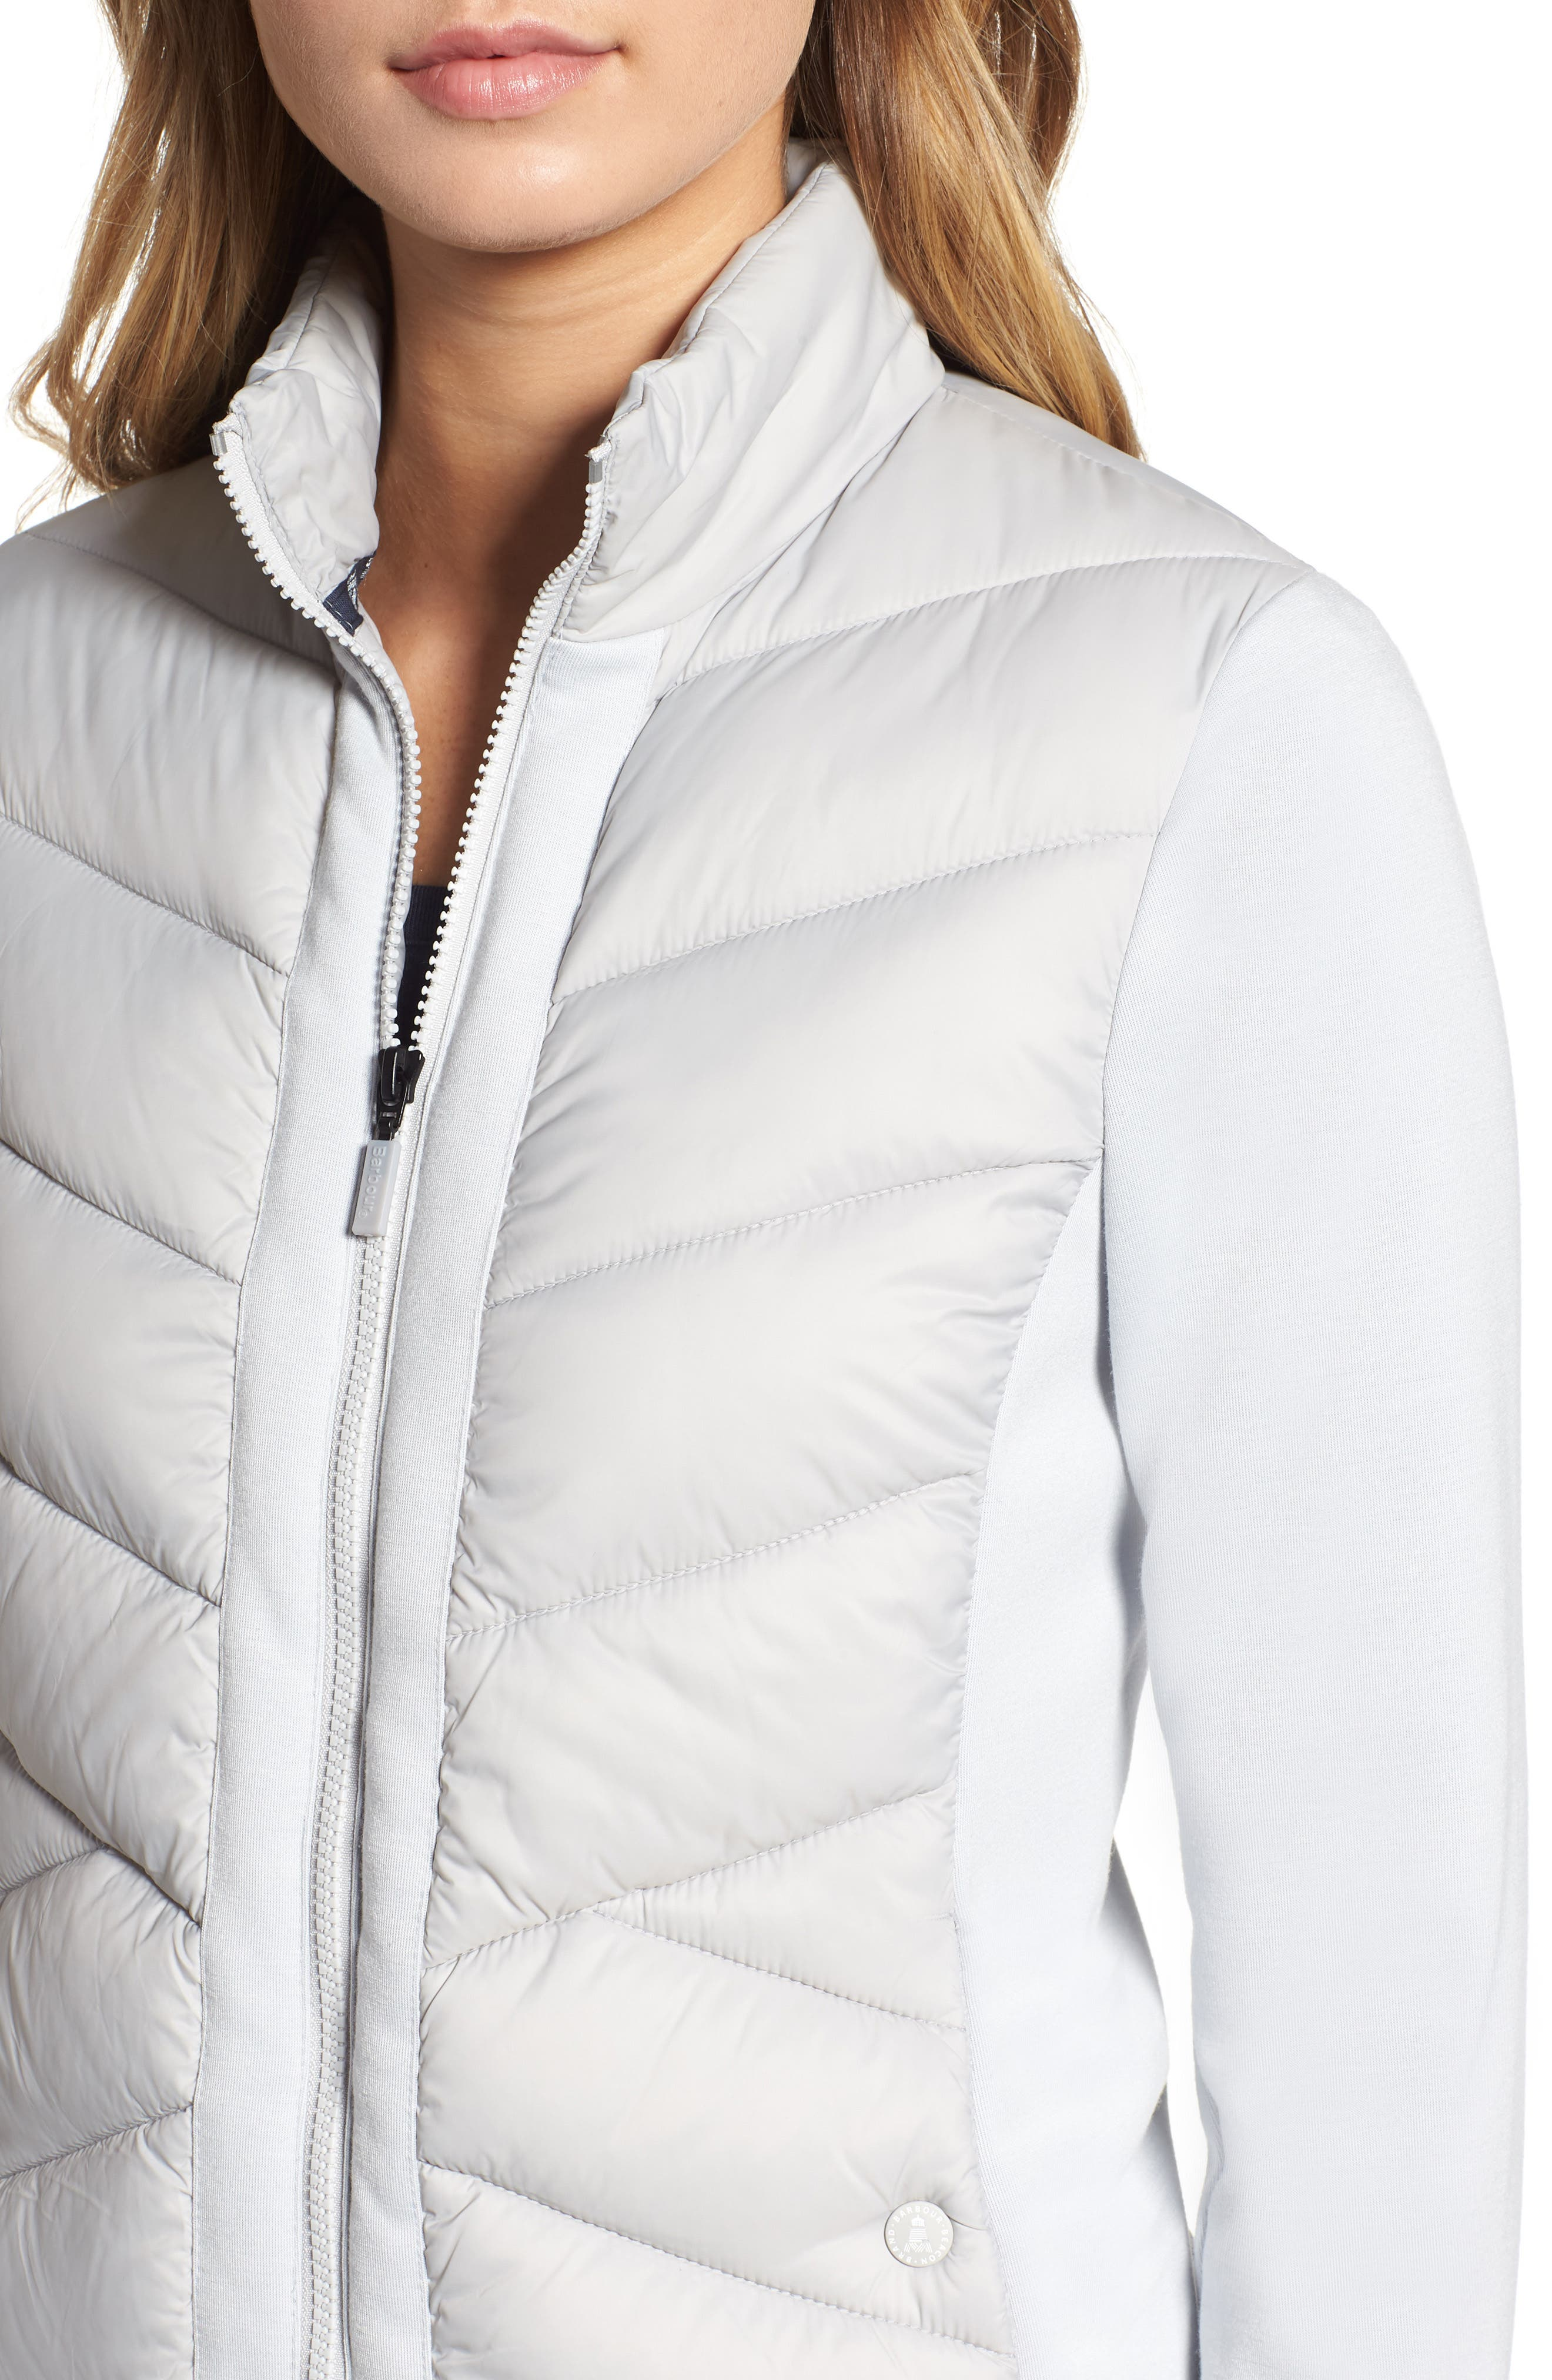 BARBOUR,                             Hirsel Chevron Quilted Sweater Jacket,                             Alternate thumbnail 4, color,                             ICE WHITE/ ICE WHITE MARL